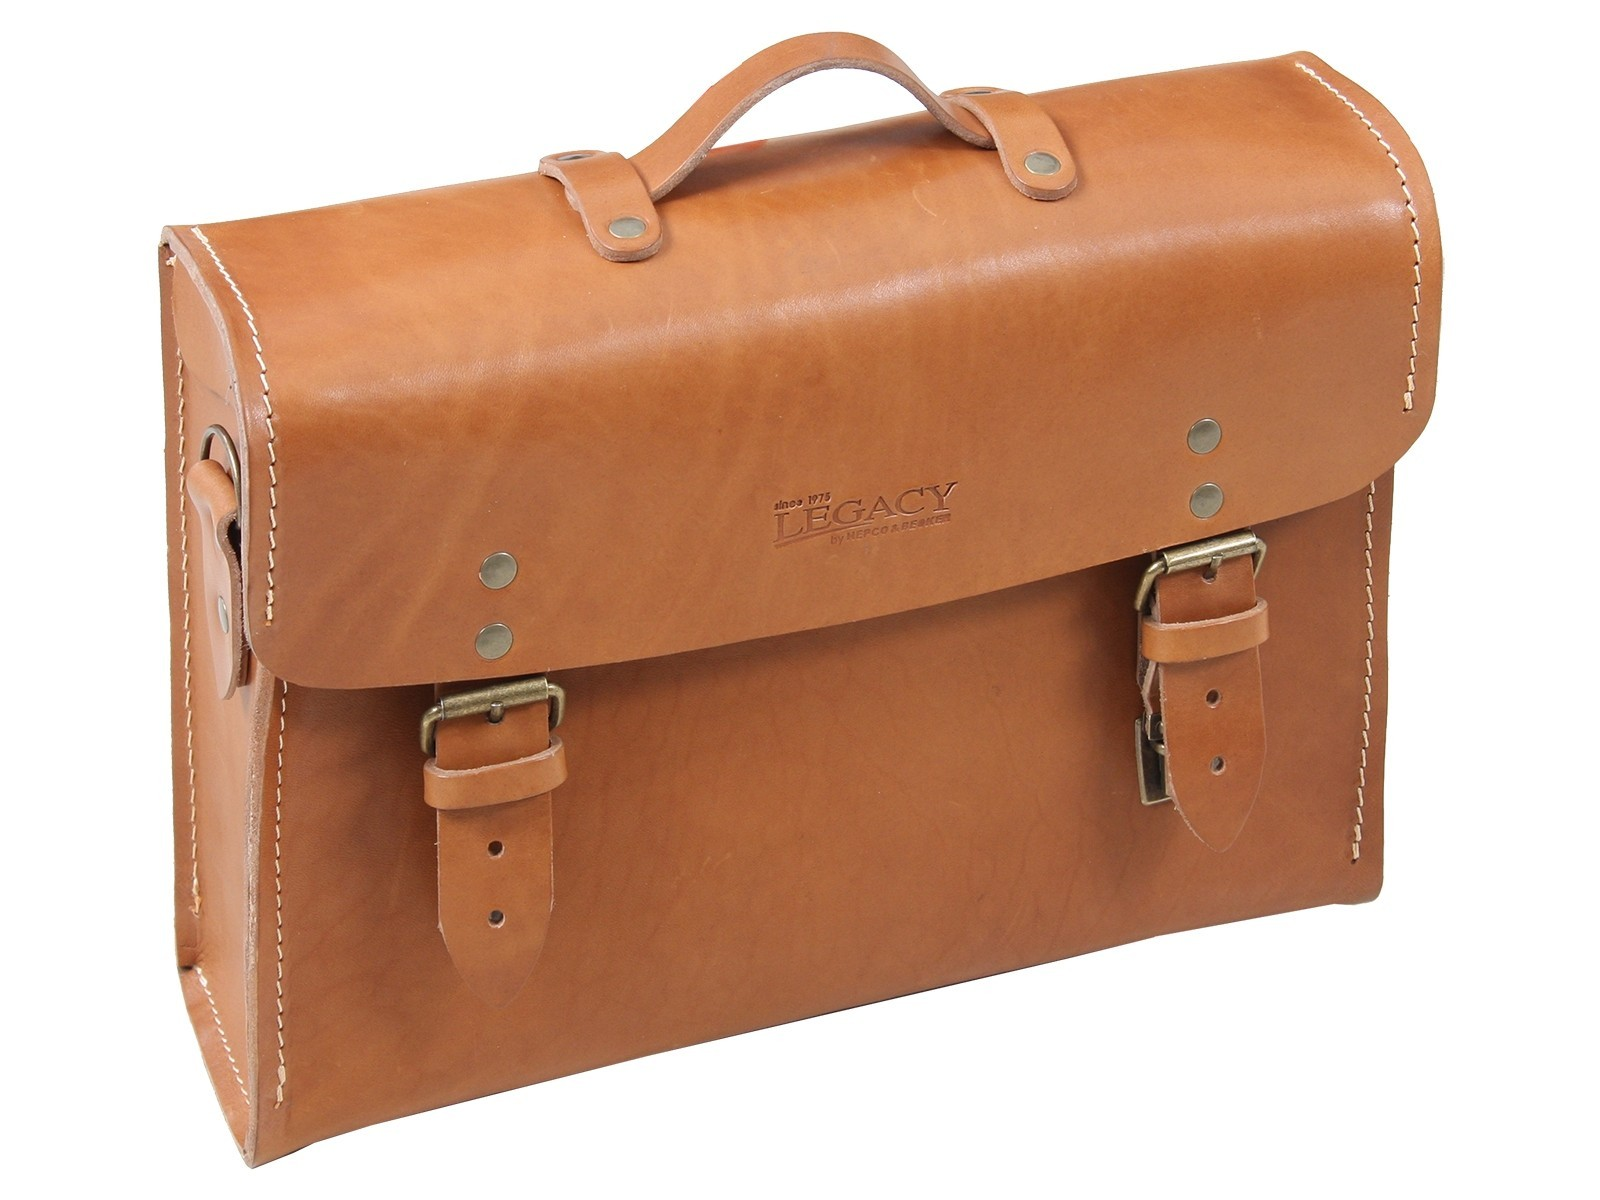 Hepco & Becker Legacy Leather Briefcase - Brown (Single Bag)